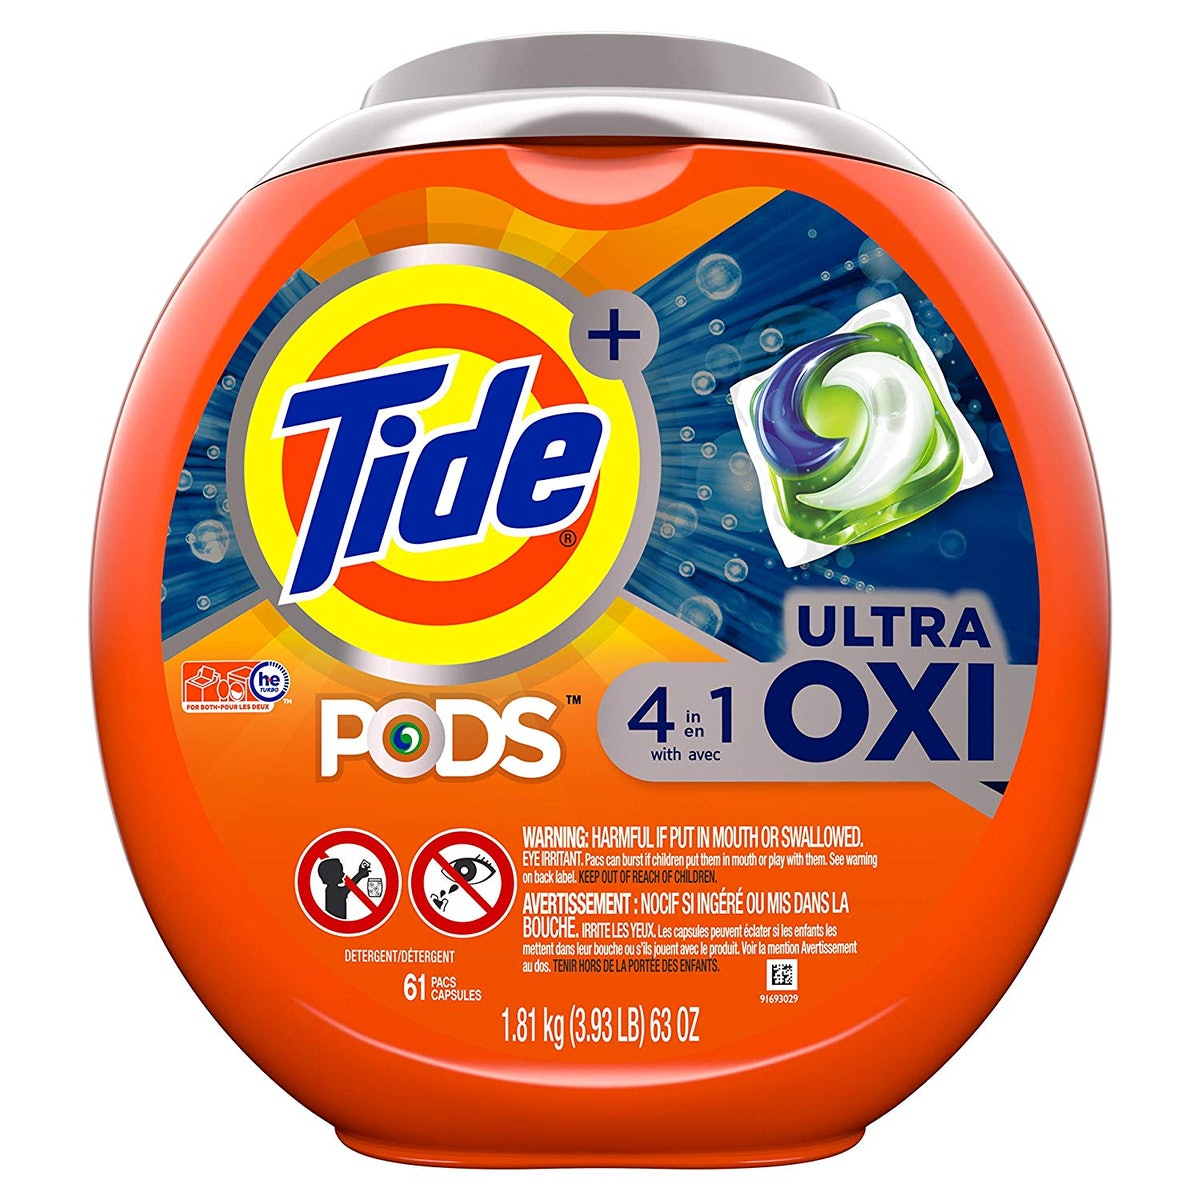 Tide PODS Ultra Oxi 4-in-1 HE Turbo Laundry Detergent Pacs